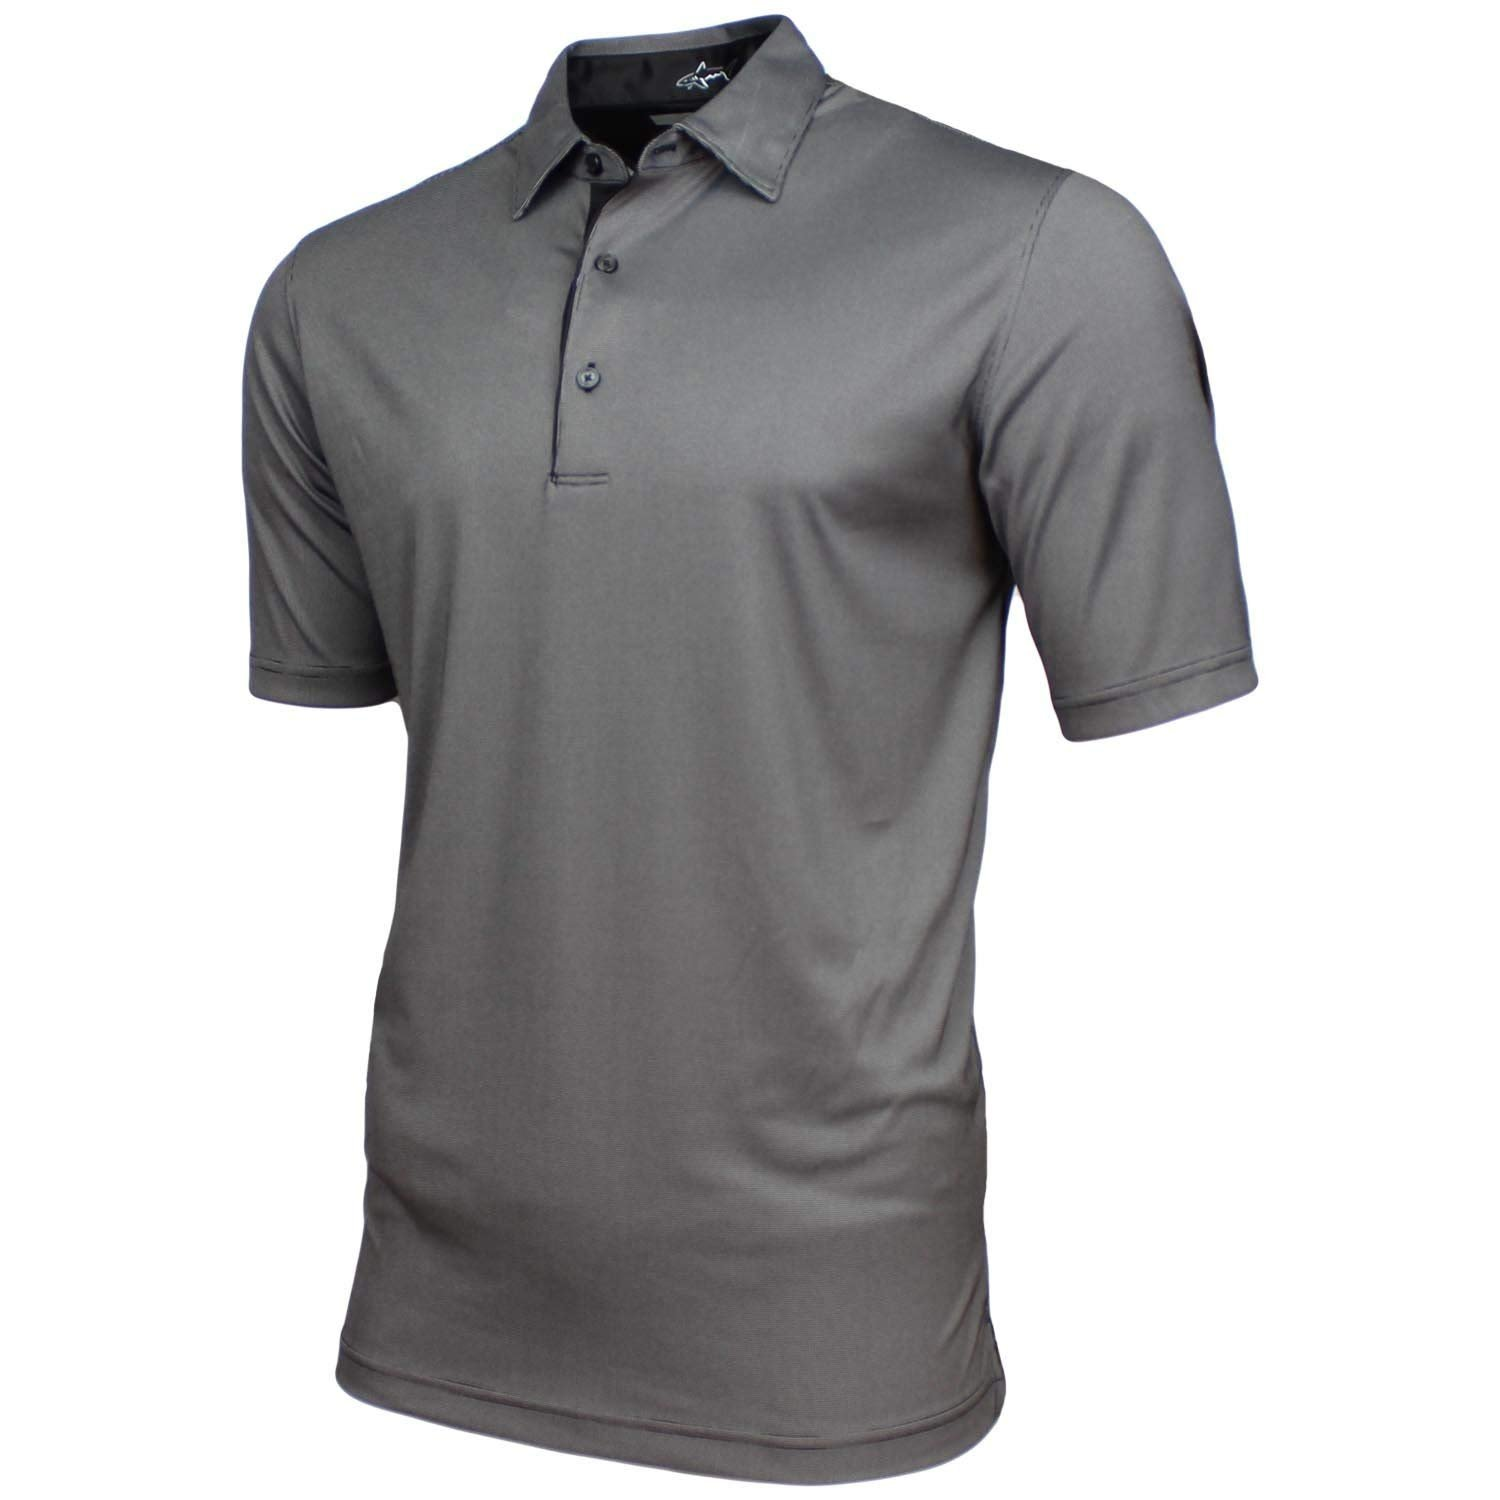 Greg Norman Mens Technical Performance Play Dry Golf Polo (Large, Black)